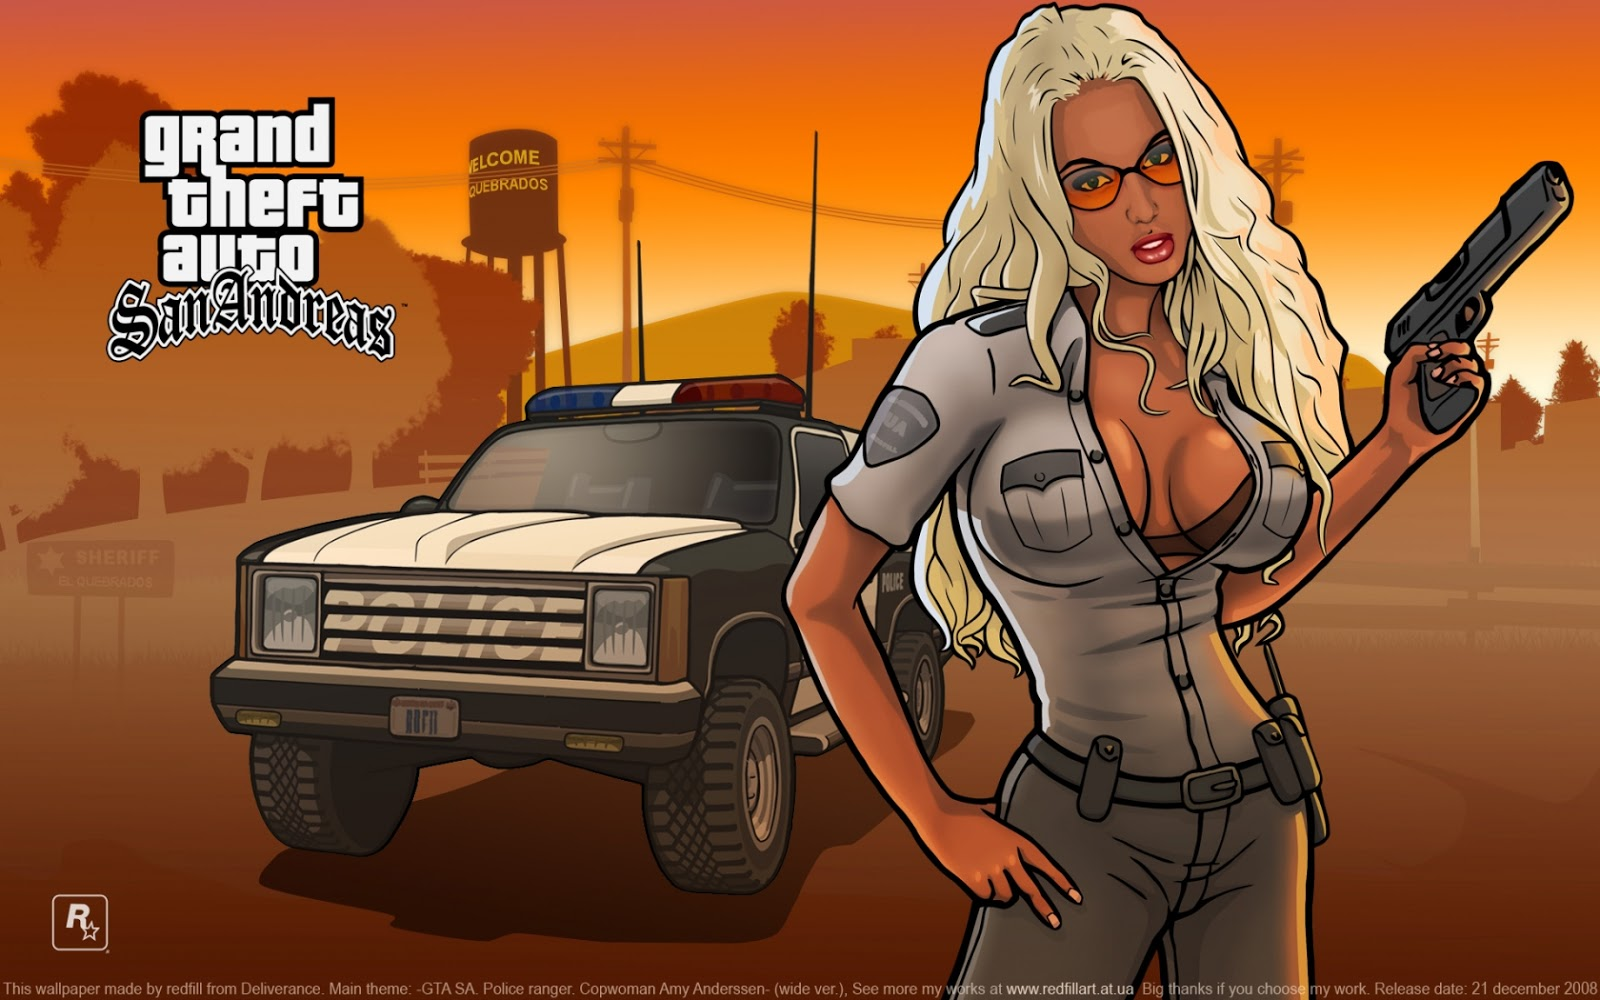 Grand Theft Auto San Andreas : Gta san andreas finds new life on your mobile device